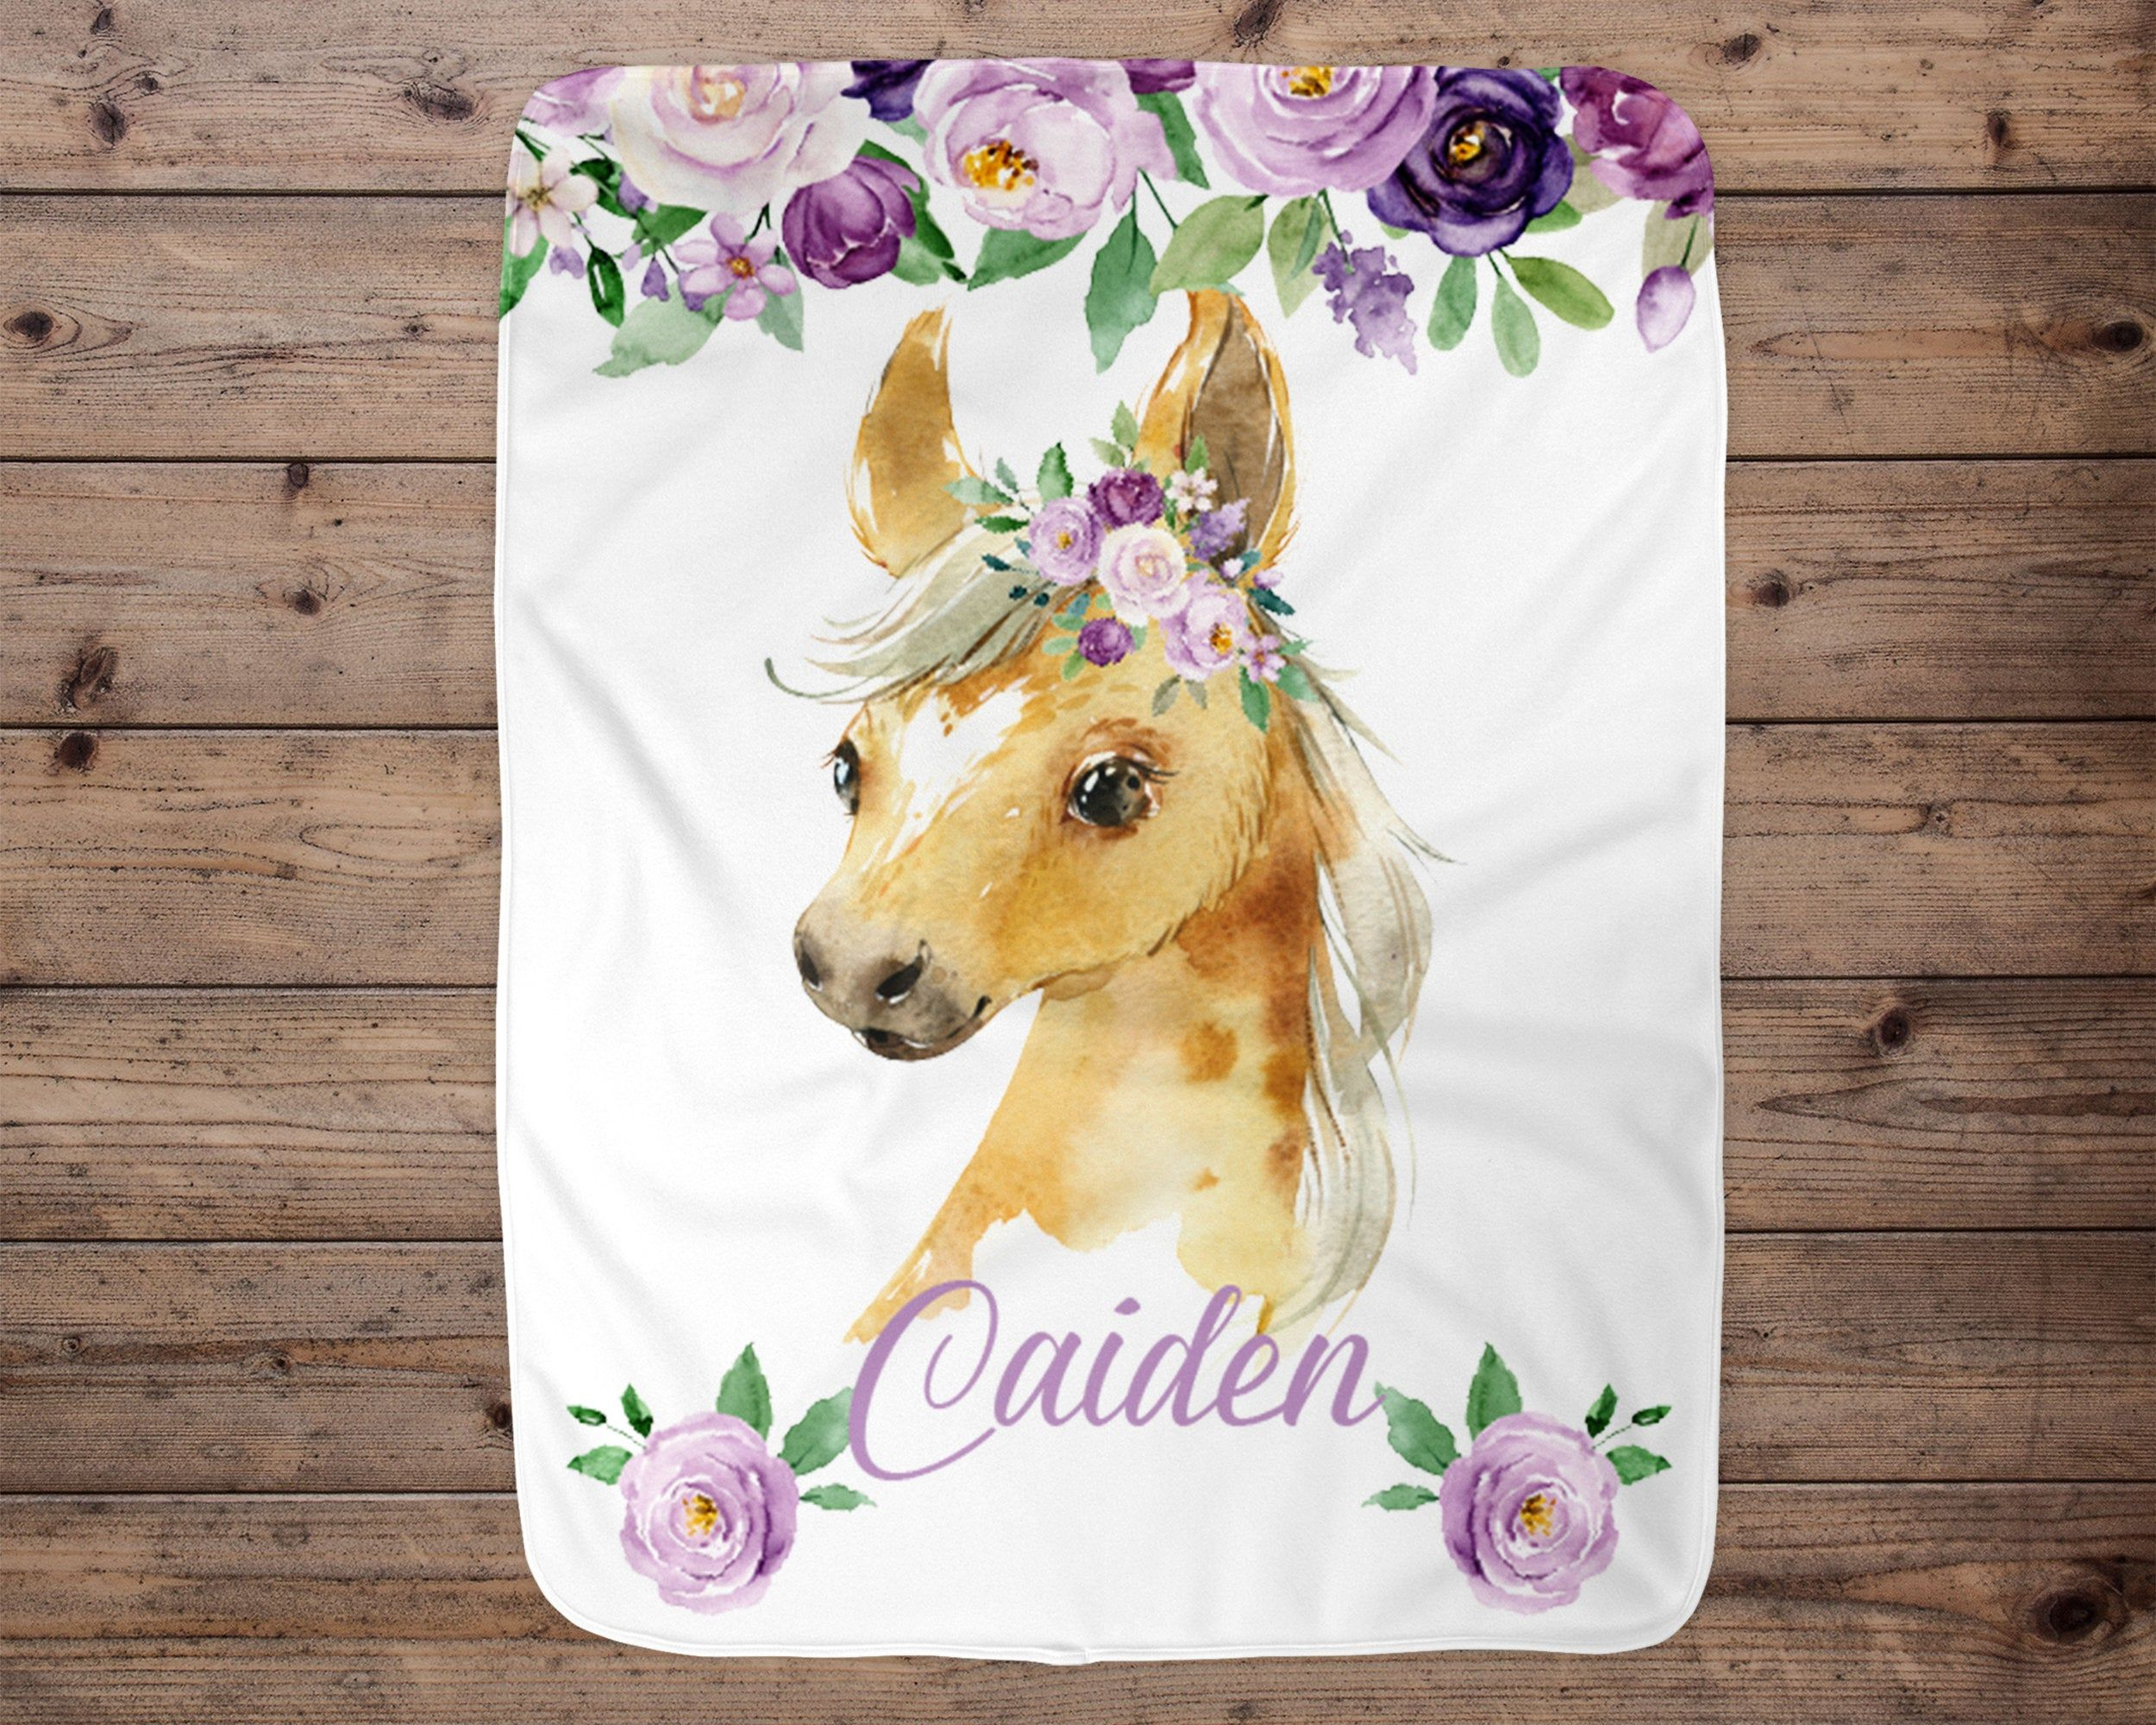 Baby girl horse blanket wild horses blanket choose colors personalized horse baby gift horse baby blanket personalized horse blanket